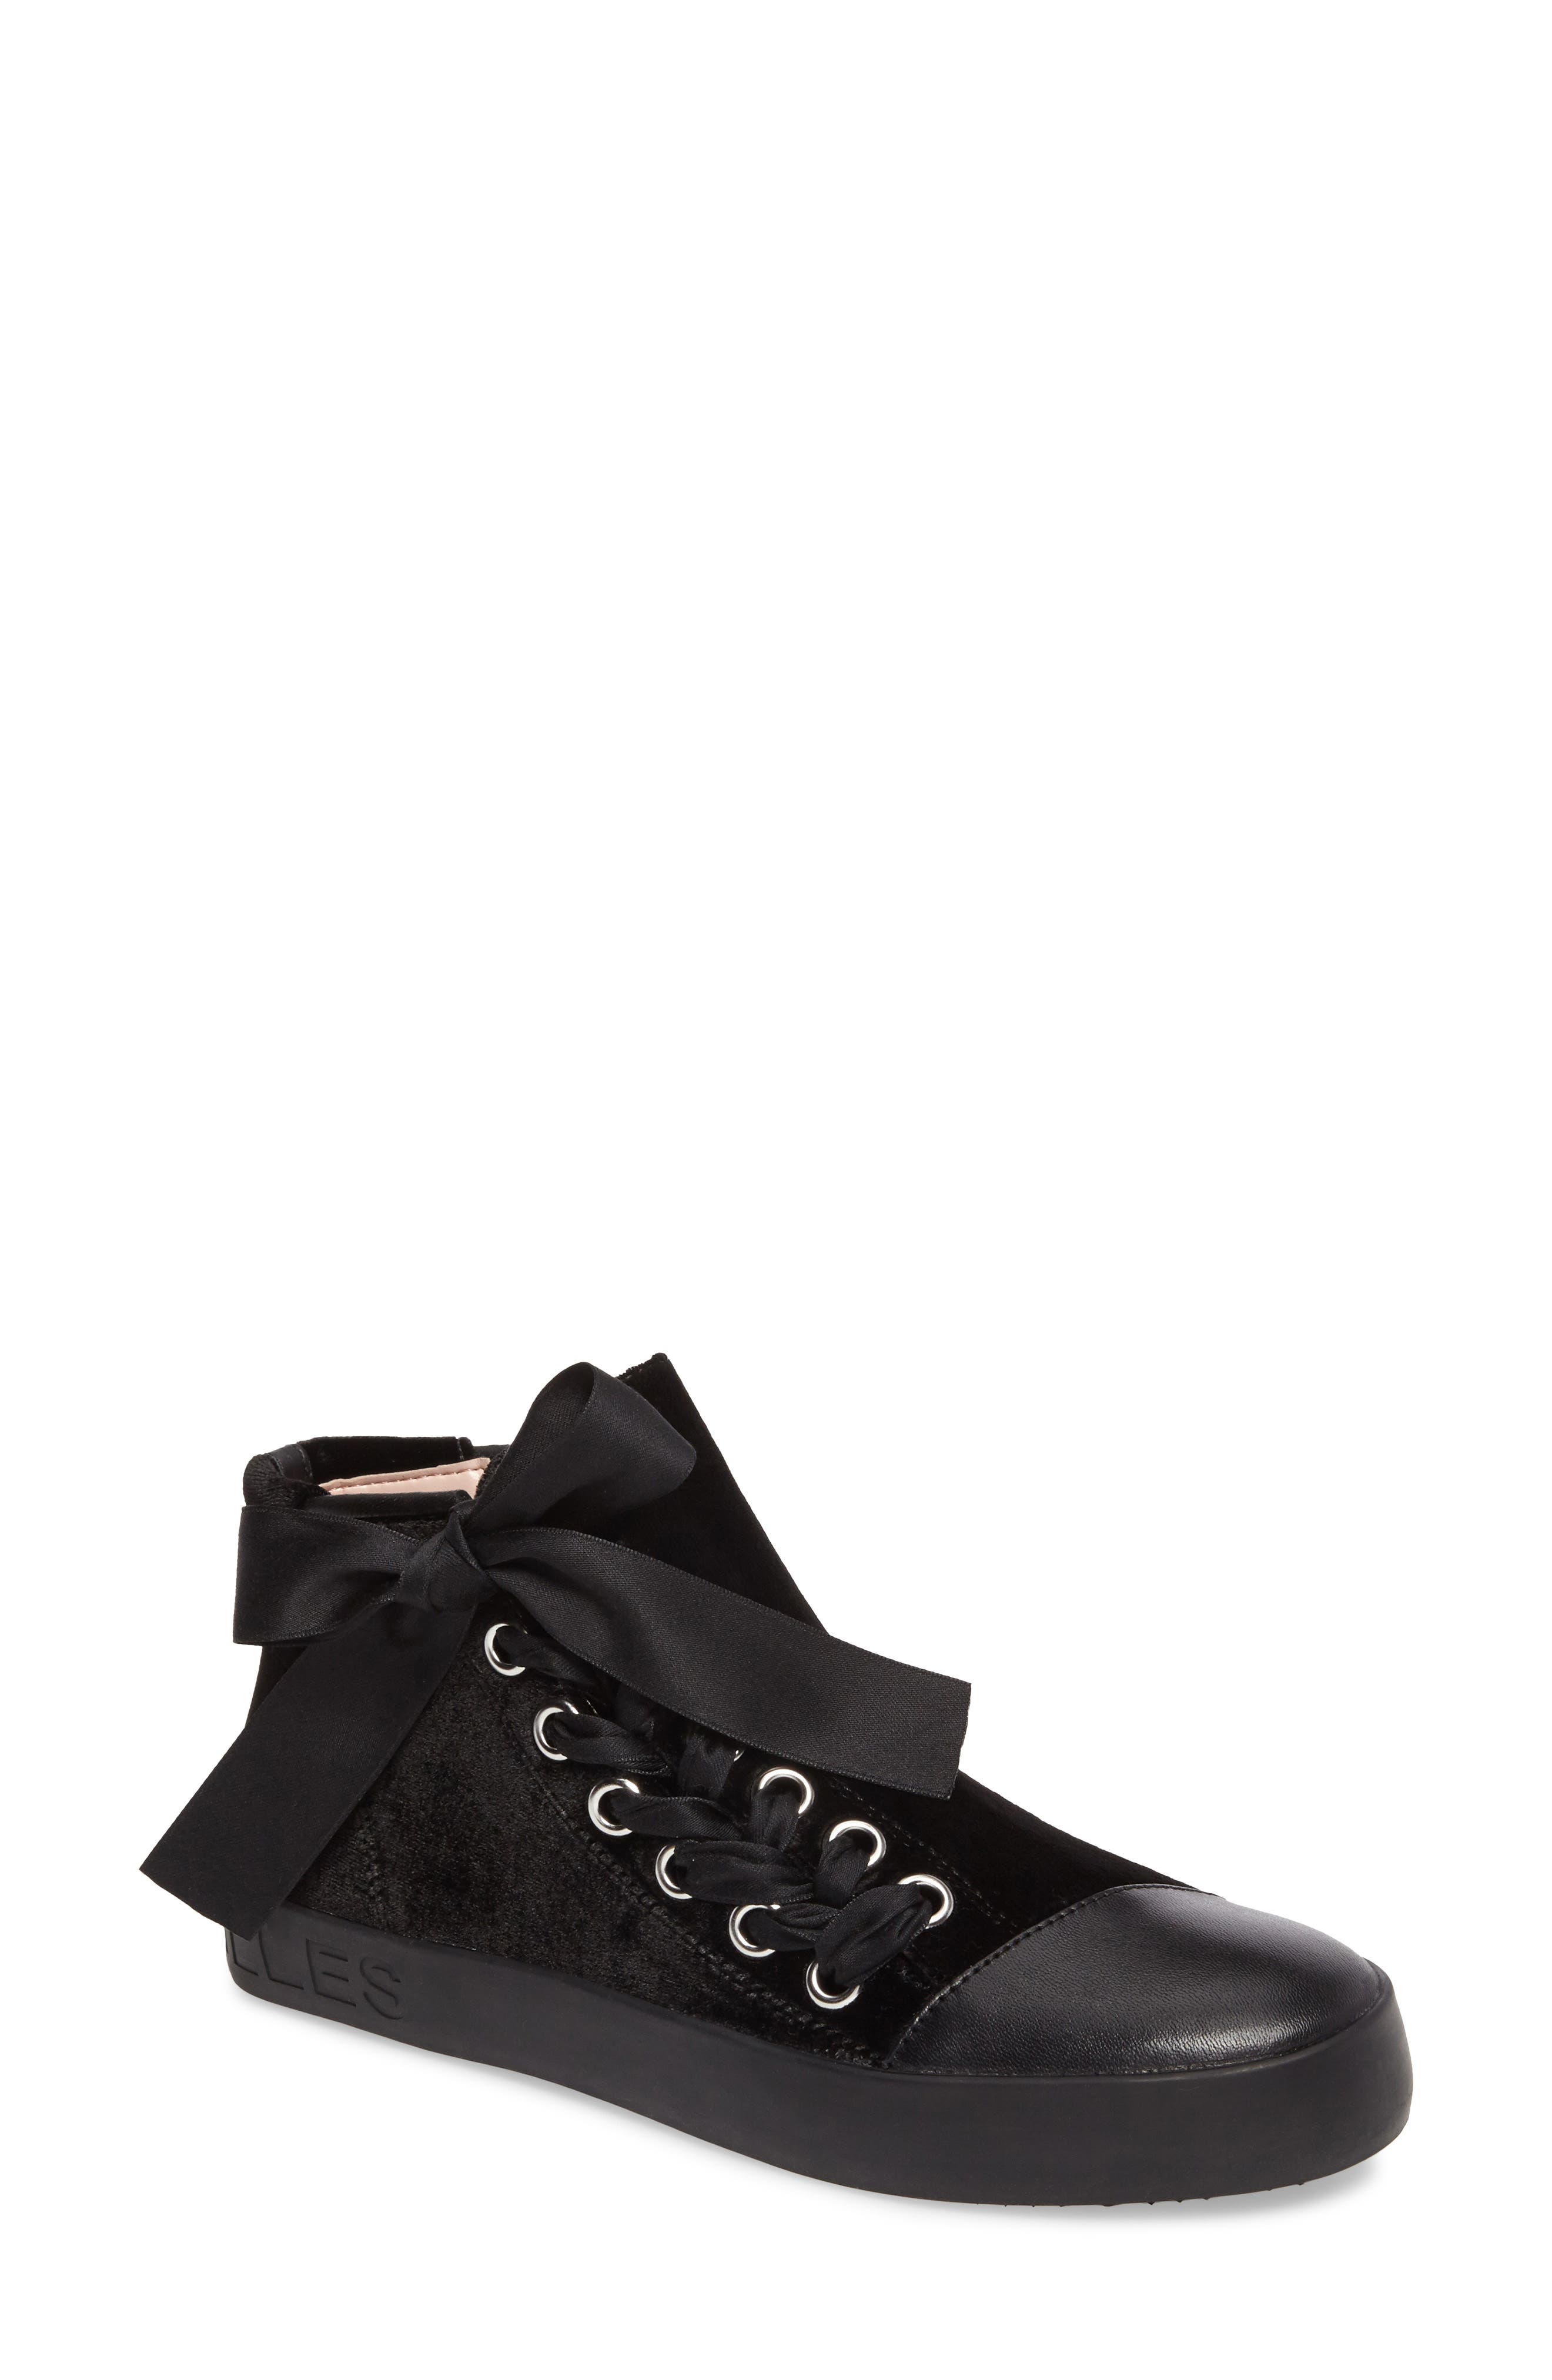 Valerie High Top Sneaker,                         Main,                         color, Black Fabric\Leather